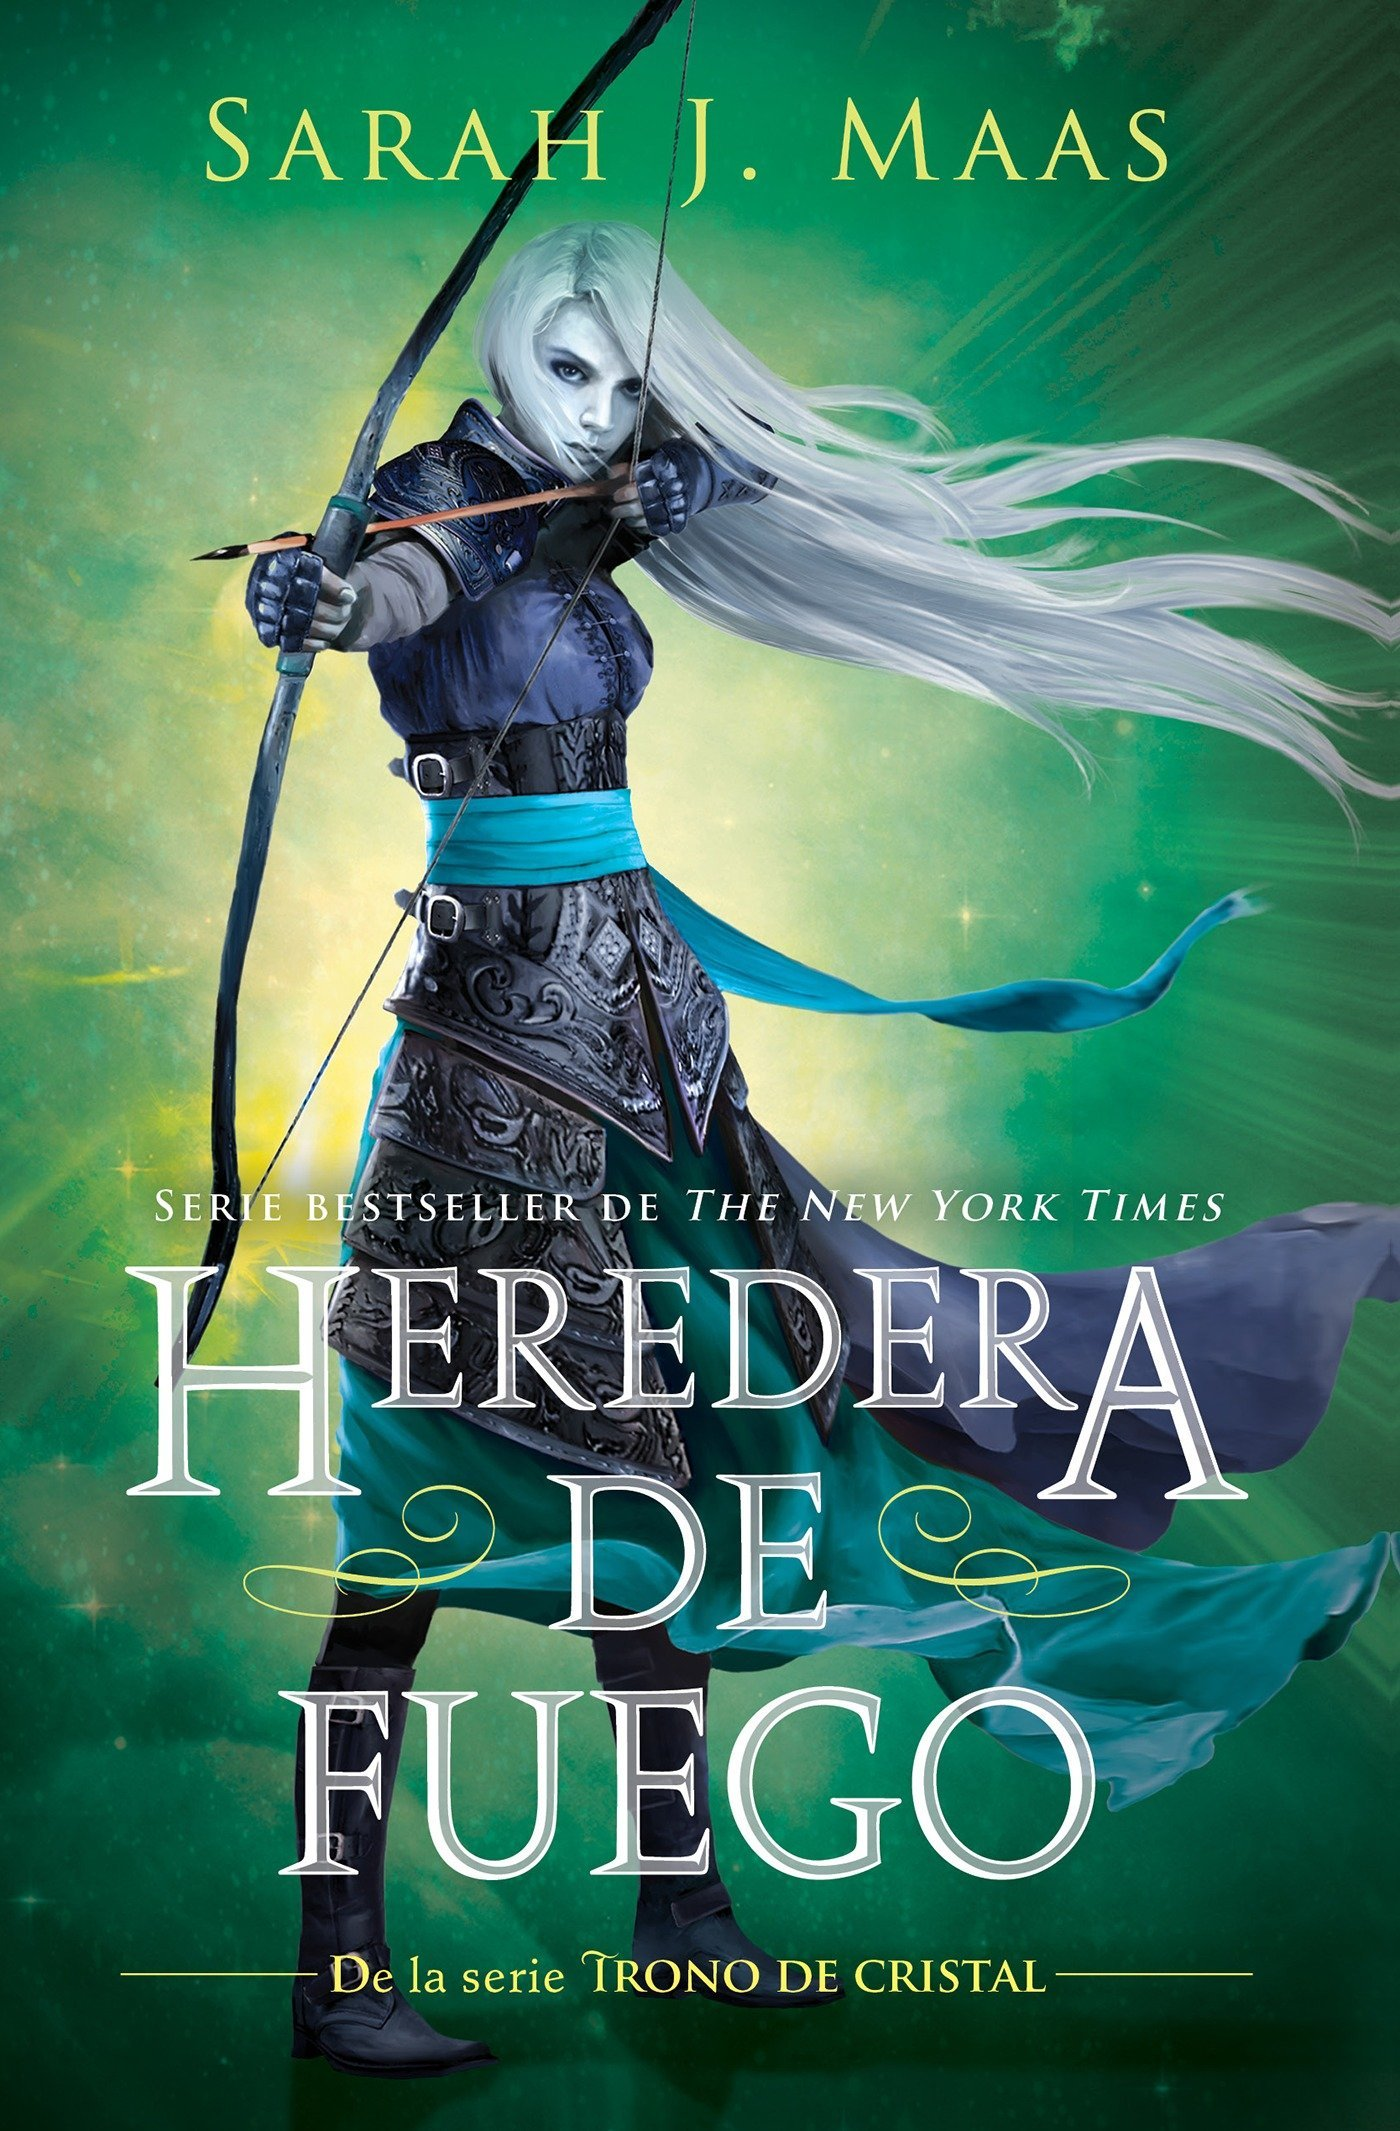 Amazon.com: Heredera del fuego / Heir of Fire (Trono de Cristal / Throne of Glass) (Spanish Edition) (9786073140683): Sarah J. Maas: Books